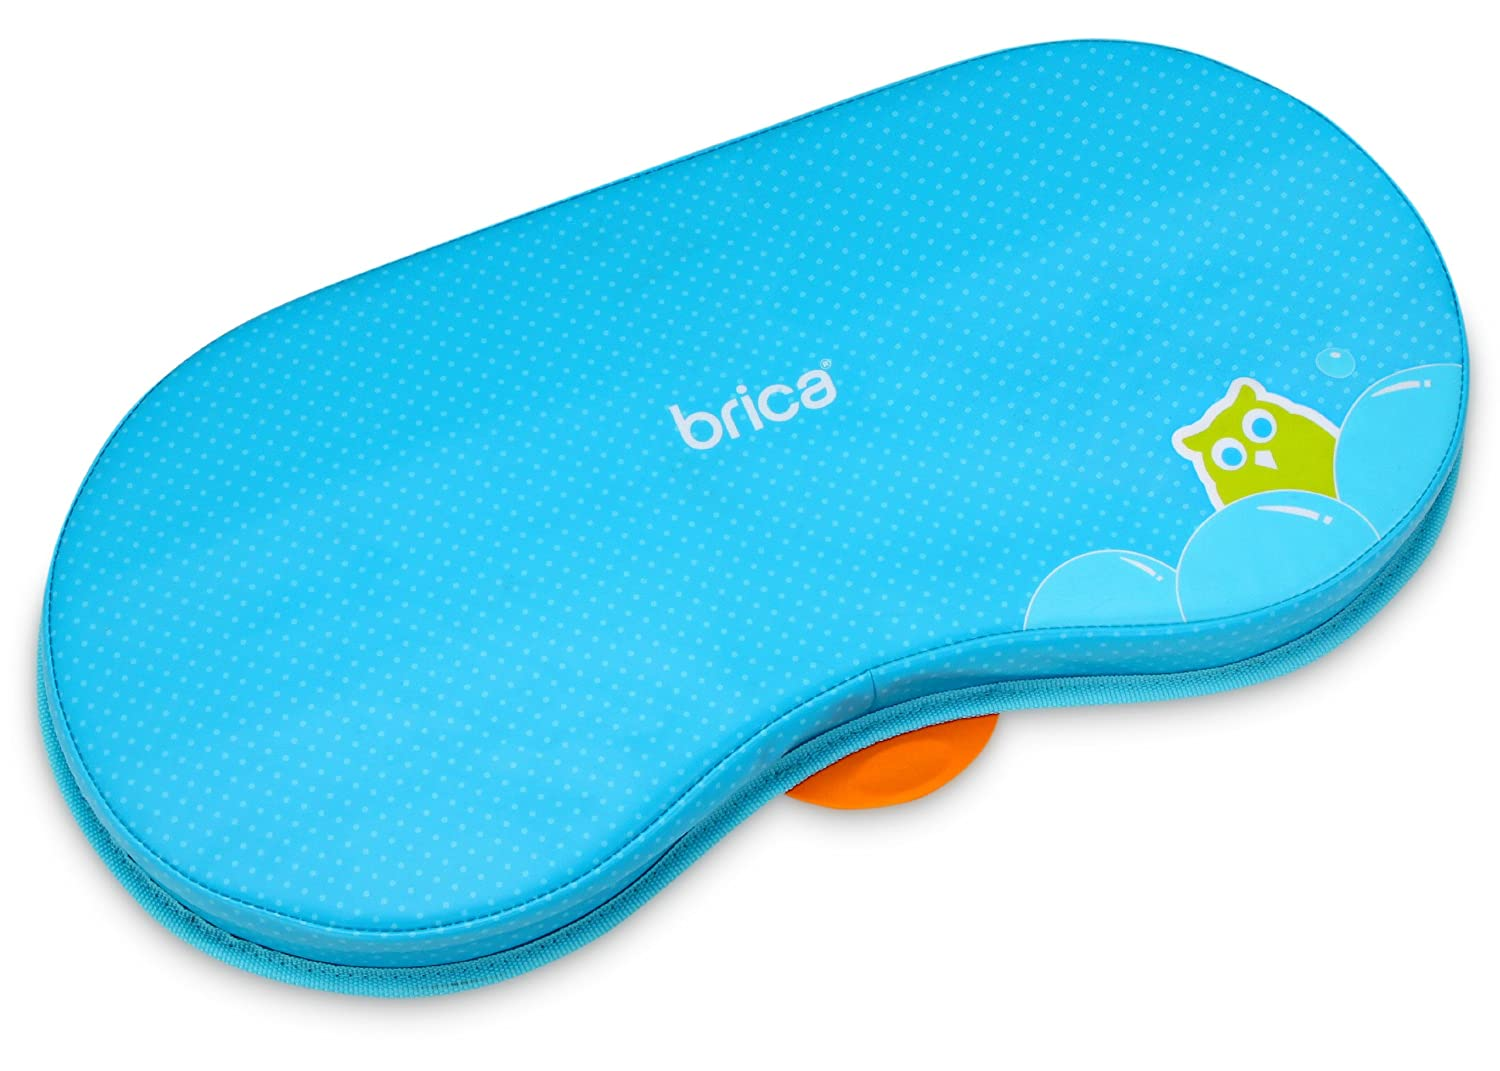 Amazon.com: BRICA Bath Kneeler (Discontinued by Manufacturer): Baby